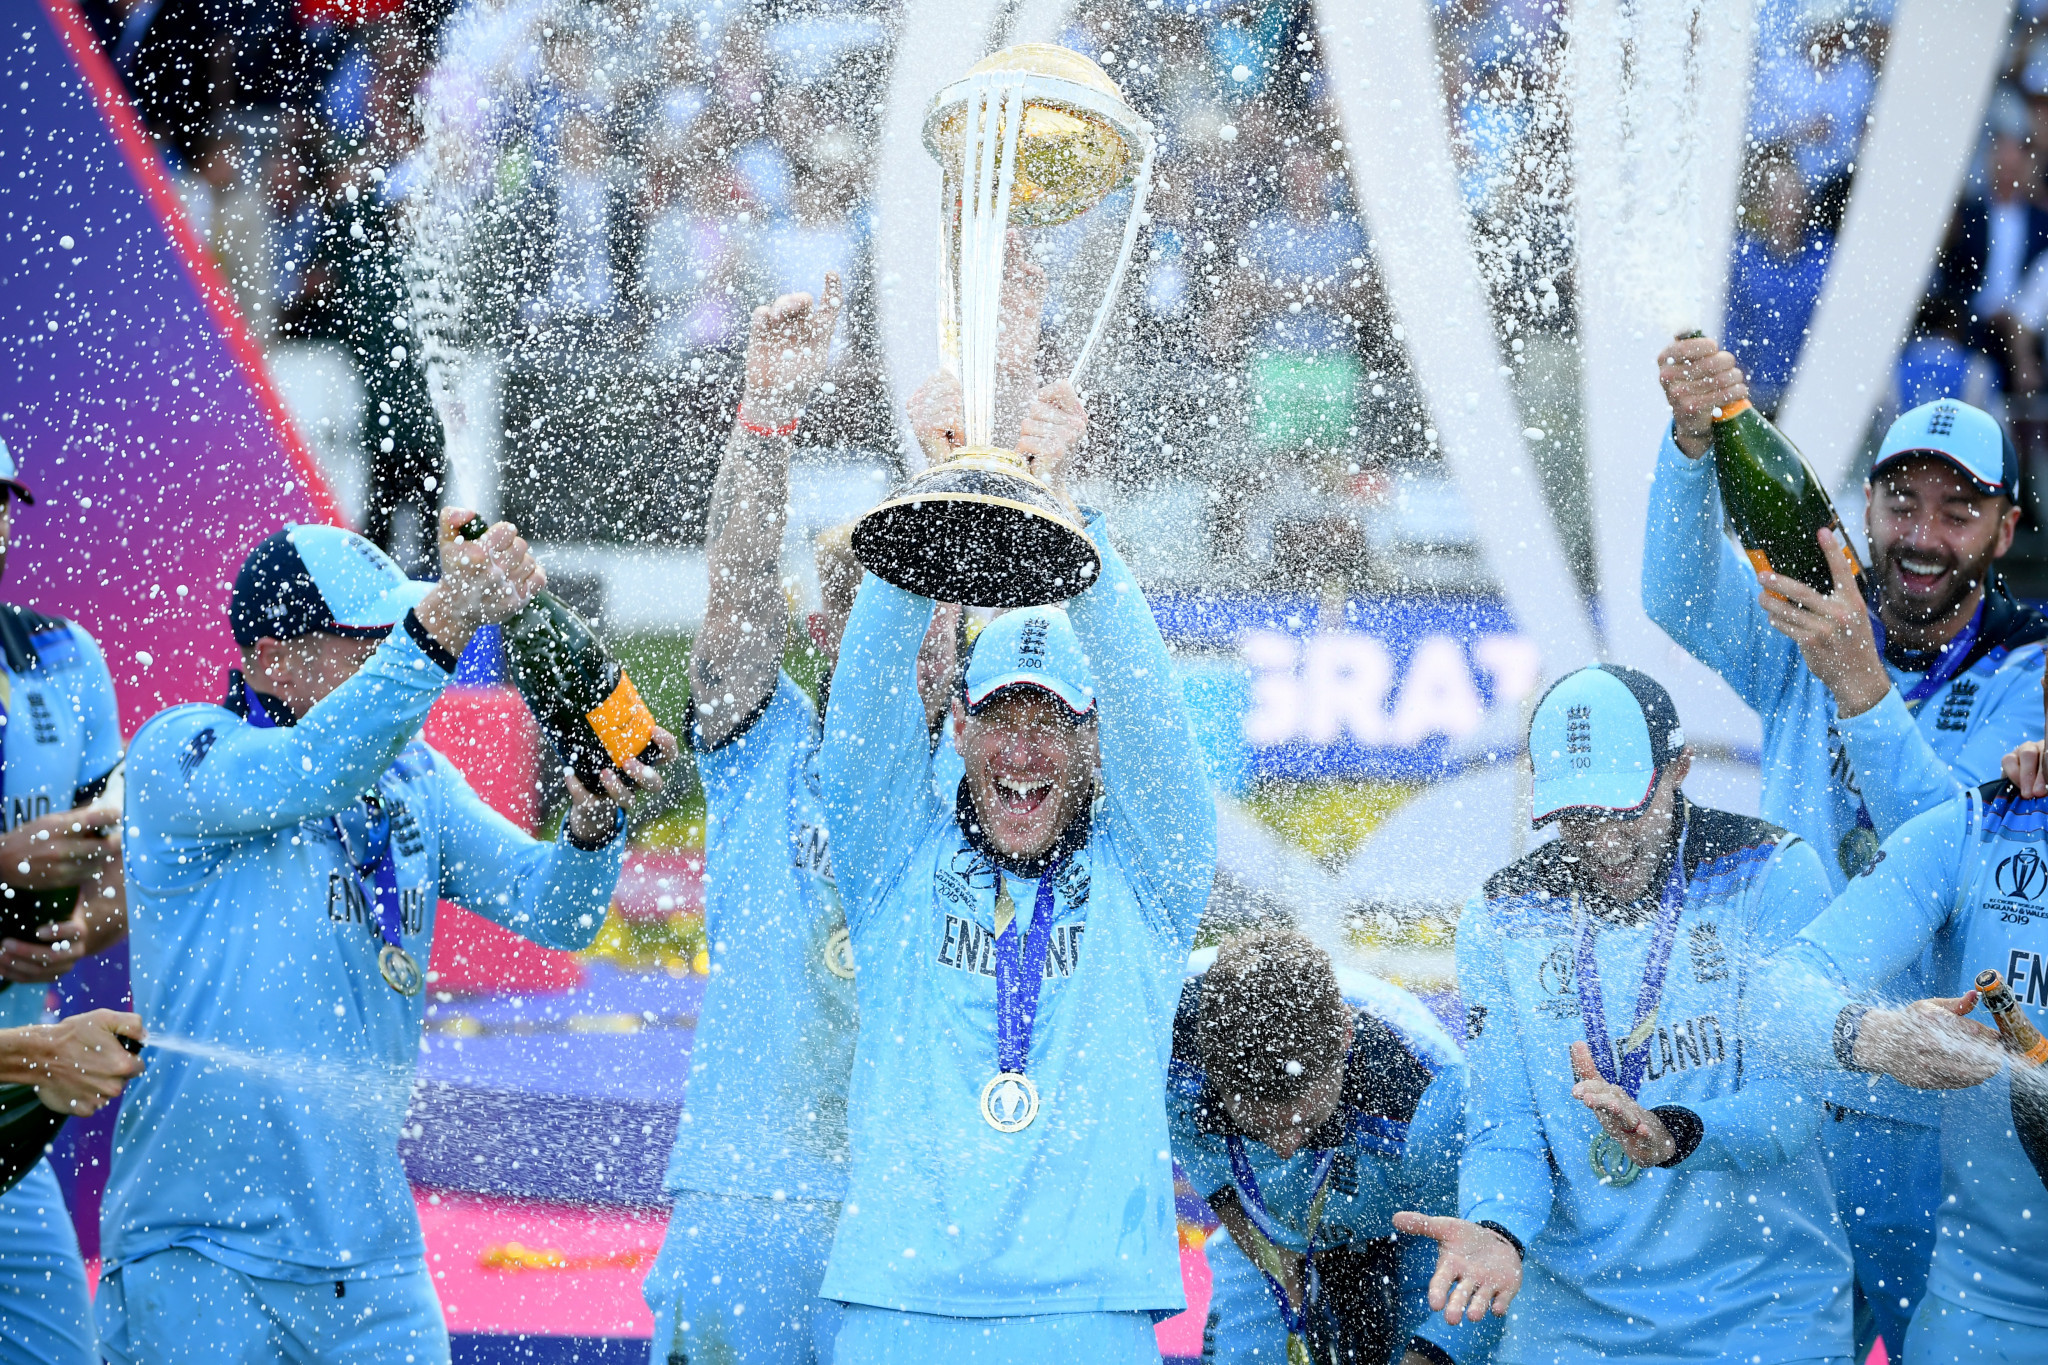 England crowned cricket World Cup champions after amazing victory over New Zealand